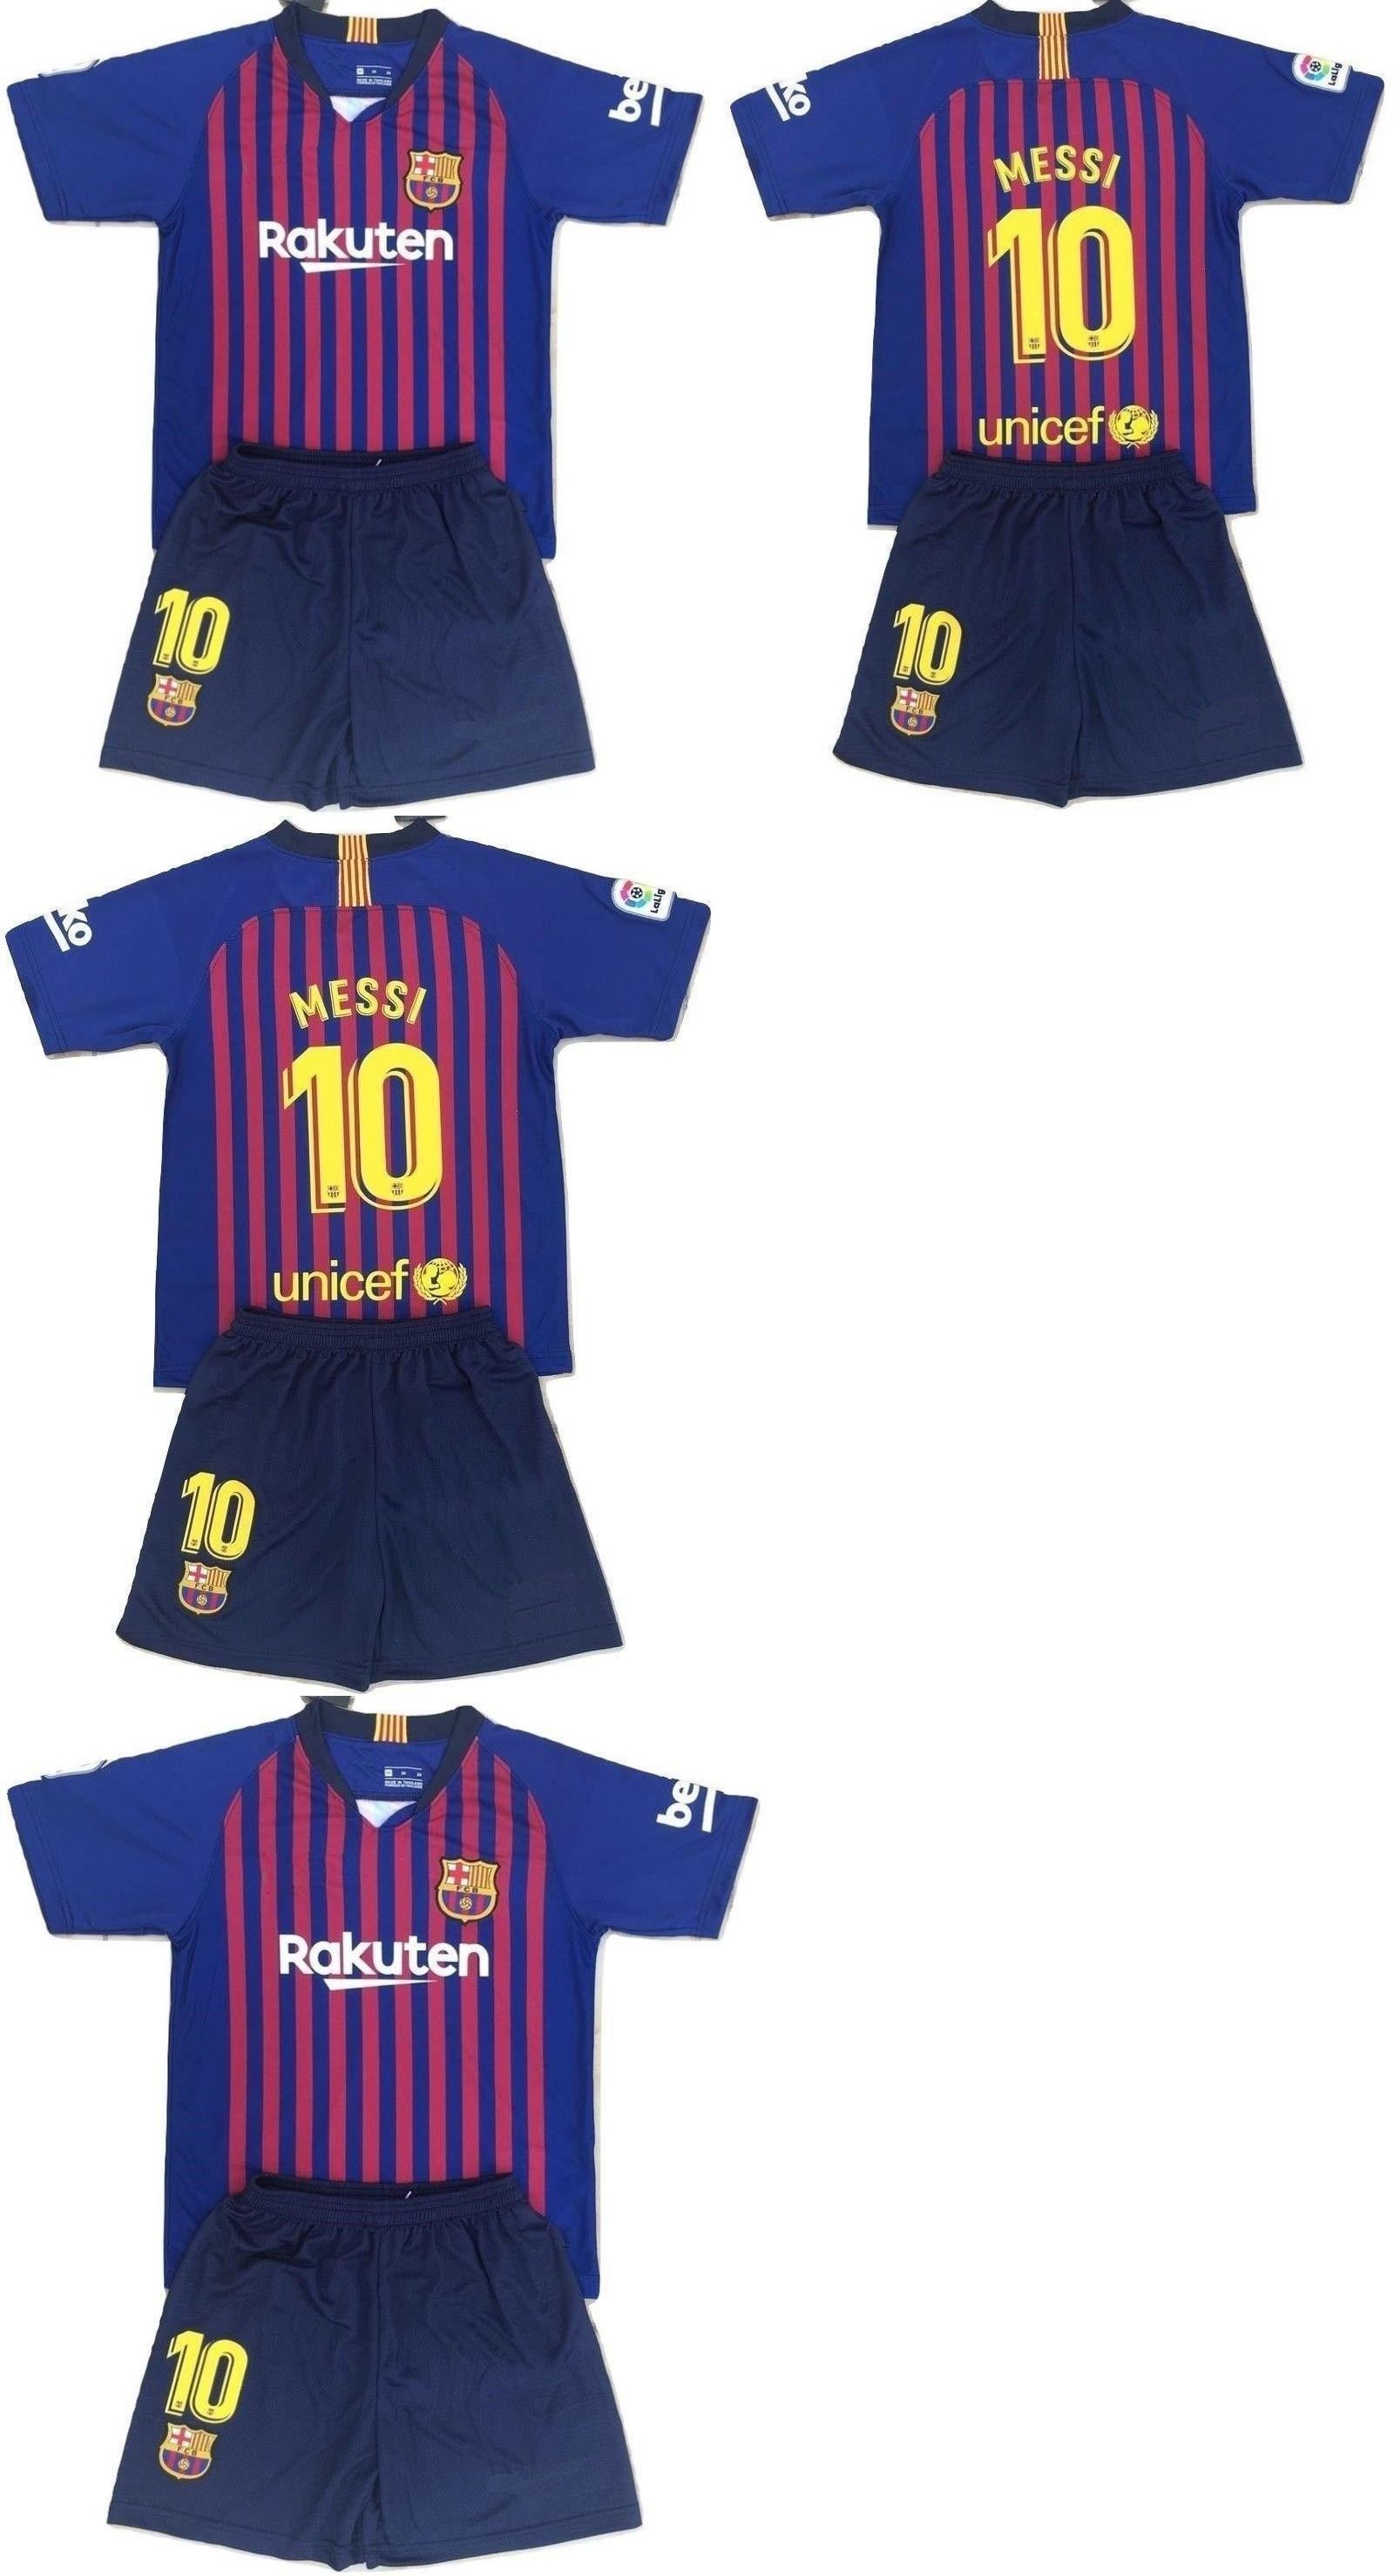 04501268b Clothing 33485  Messi Barcelona Kids Boys Set Soccer Jersey Uniform Kit  Small ( 8-9 Yrs Old ) -  BUY IT NOW ONLY   19.99 on  eBay  clothing  messi  ...